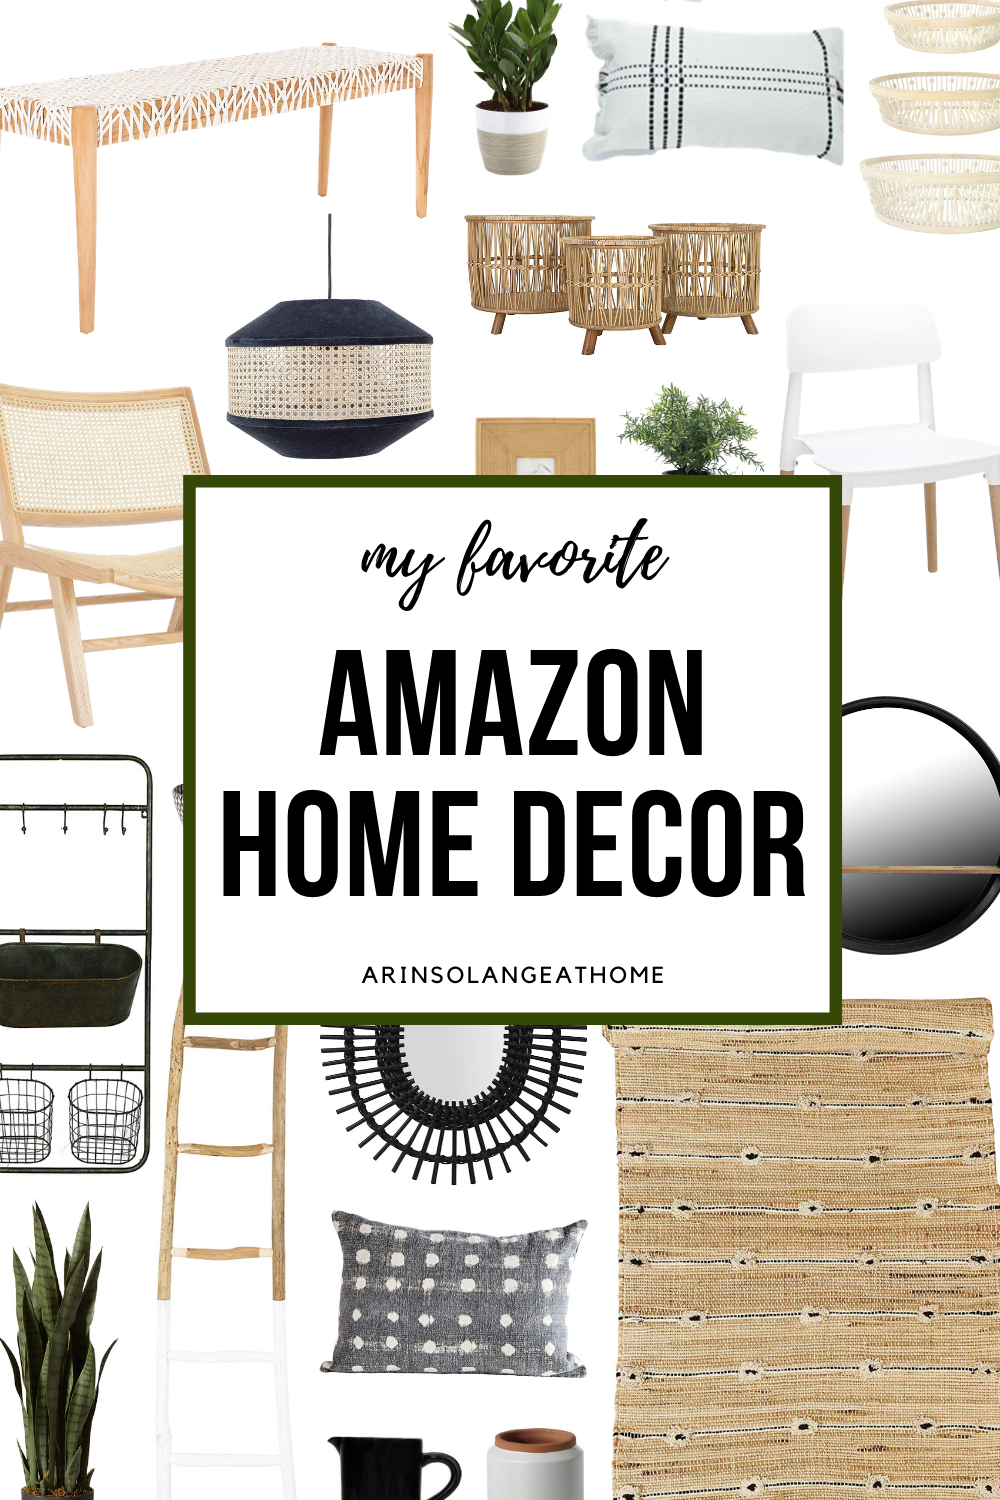 Affordable Amazon Home Finds 3 Arinsolangeathome In 2020 Home Decor Amazon Home Decor Amazon Home